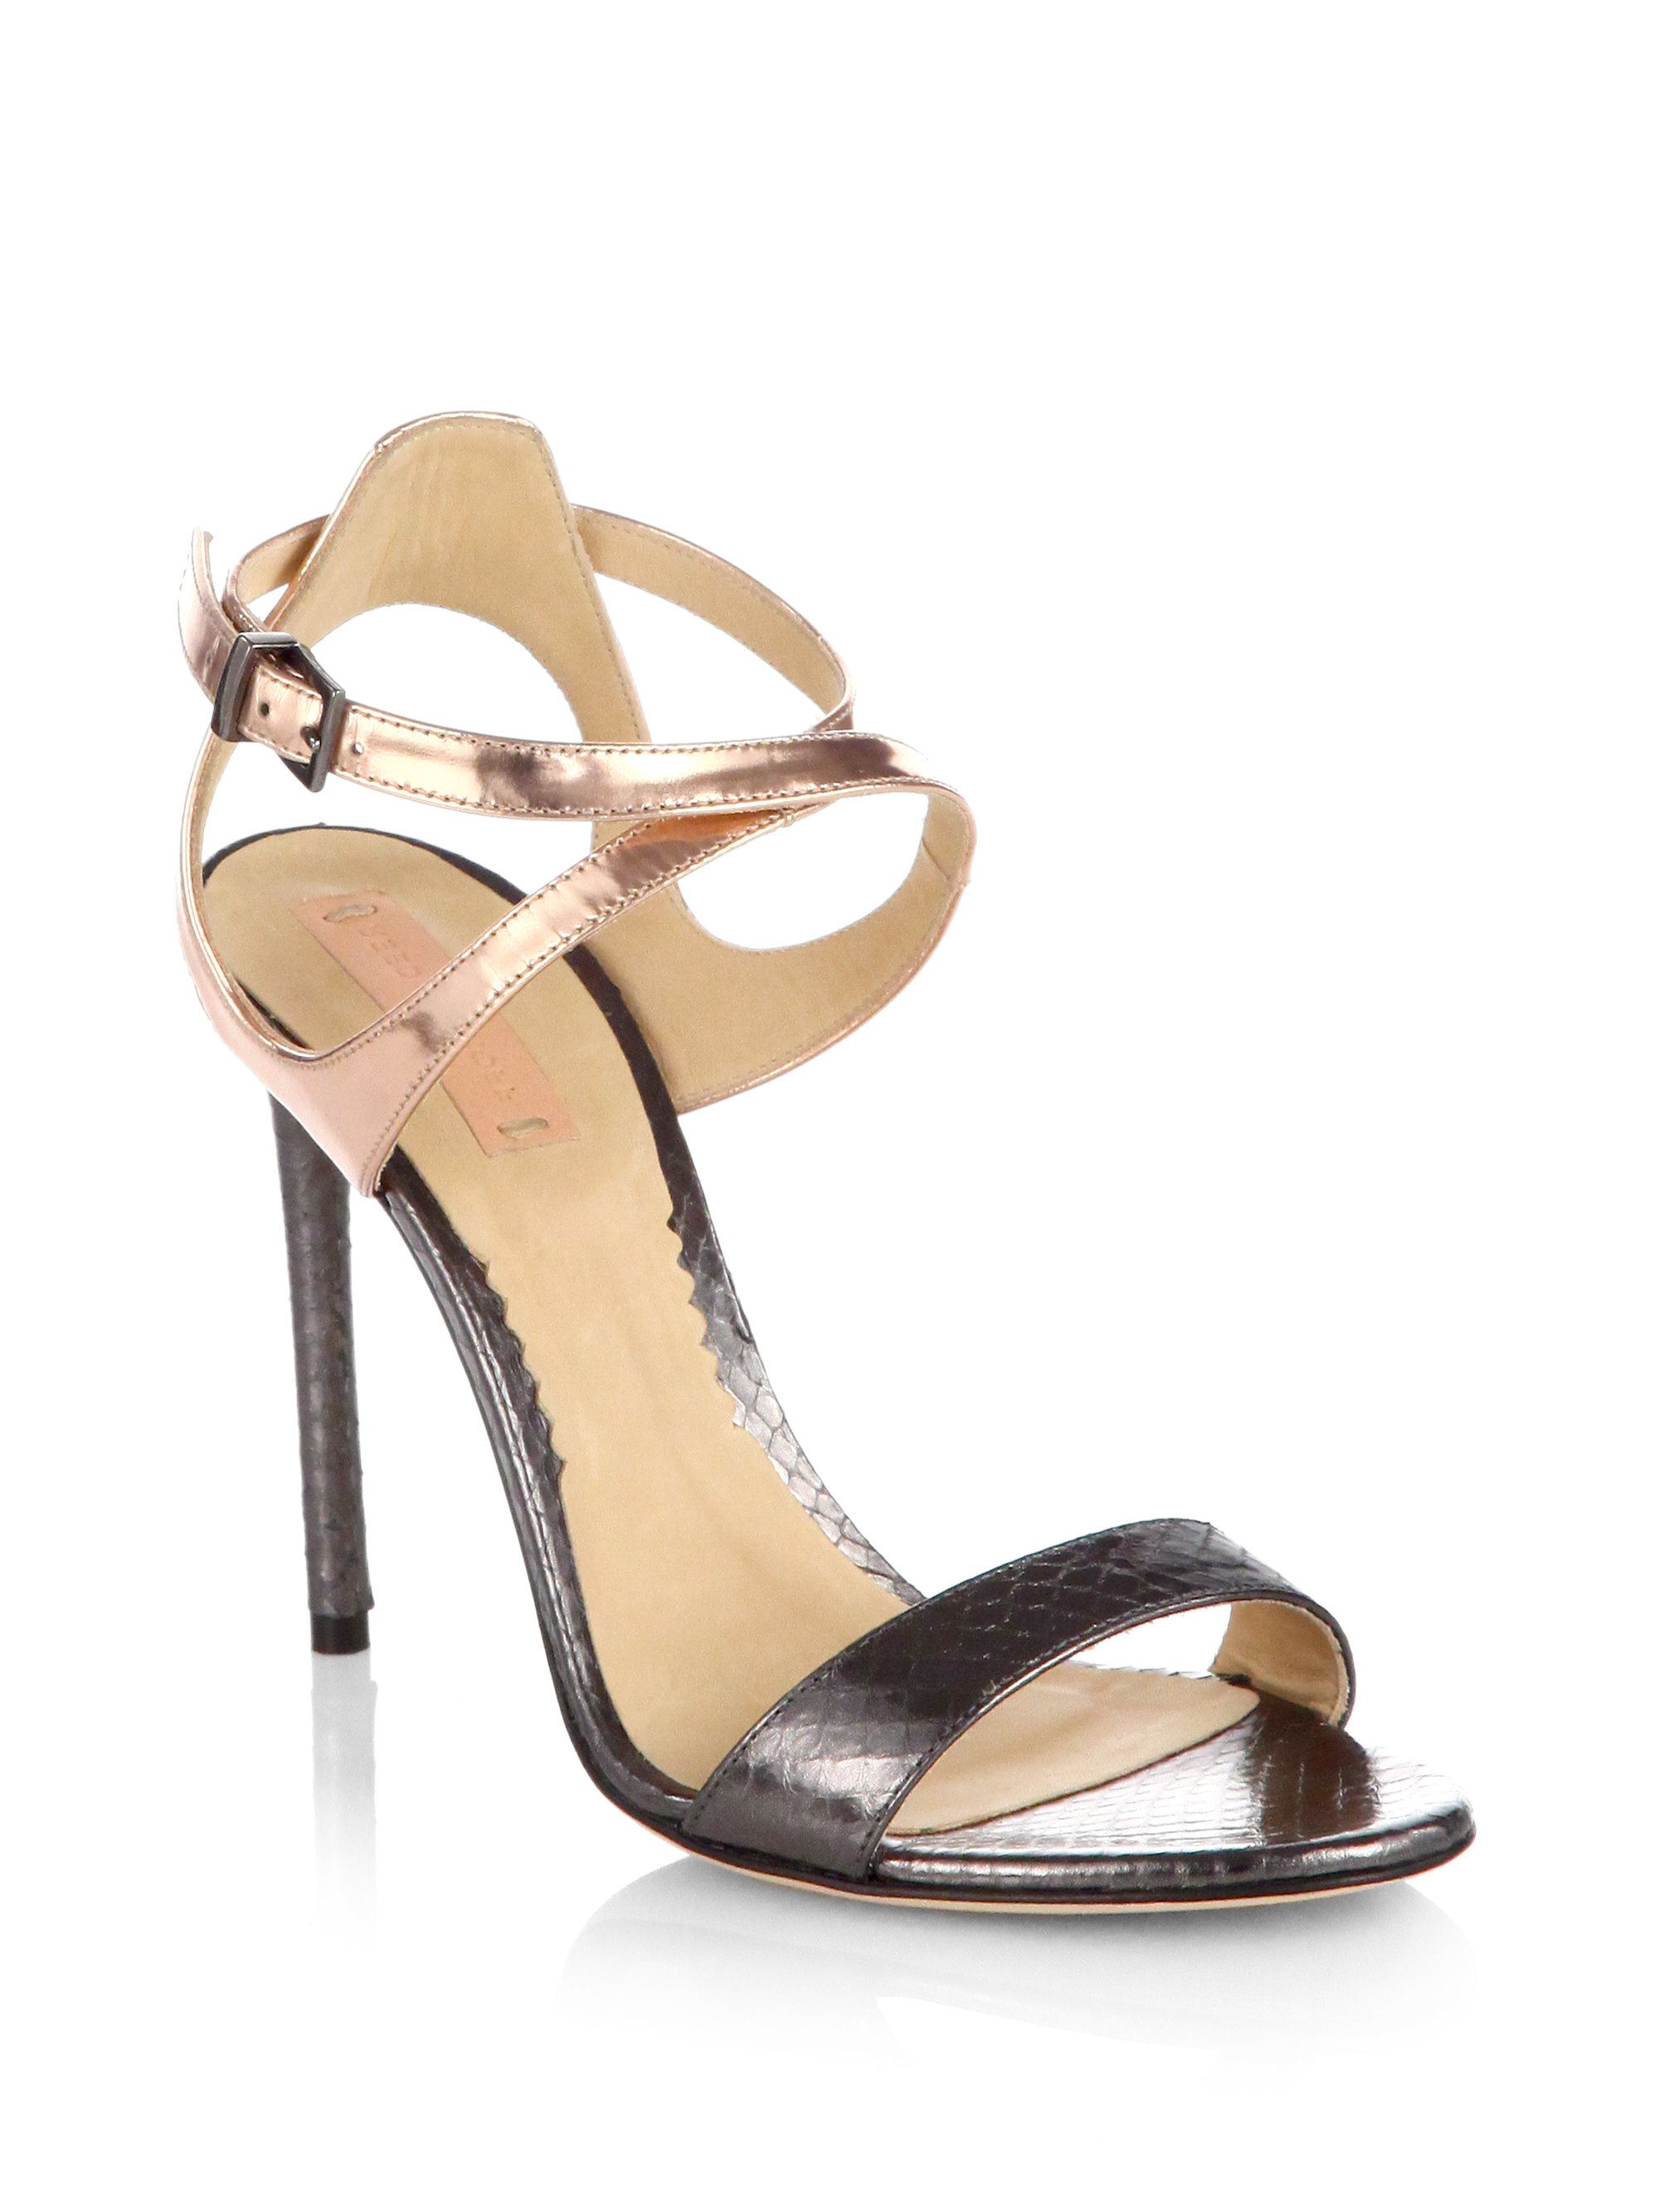 Reed Krakoff Embossed Leather PVC-Trimmed Sandals w/ Tags footlocker finishline online in China view sale online for sale wholesale price ENgl6p1SC0